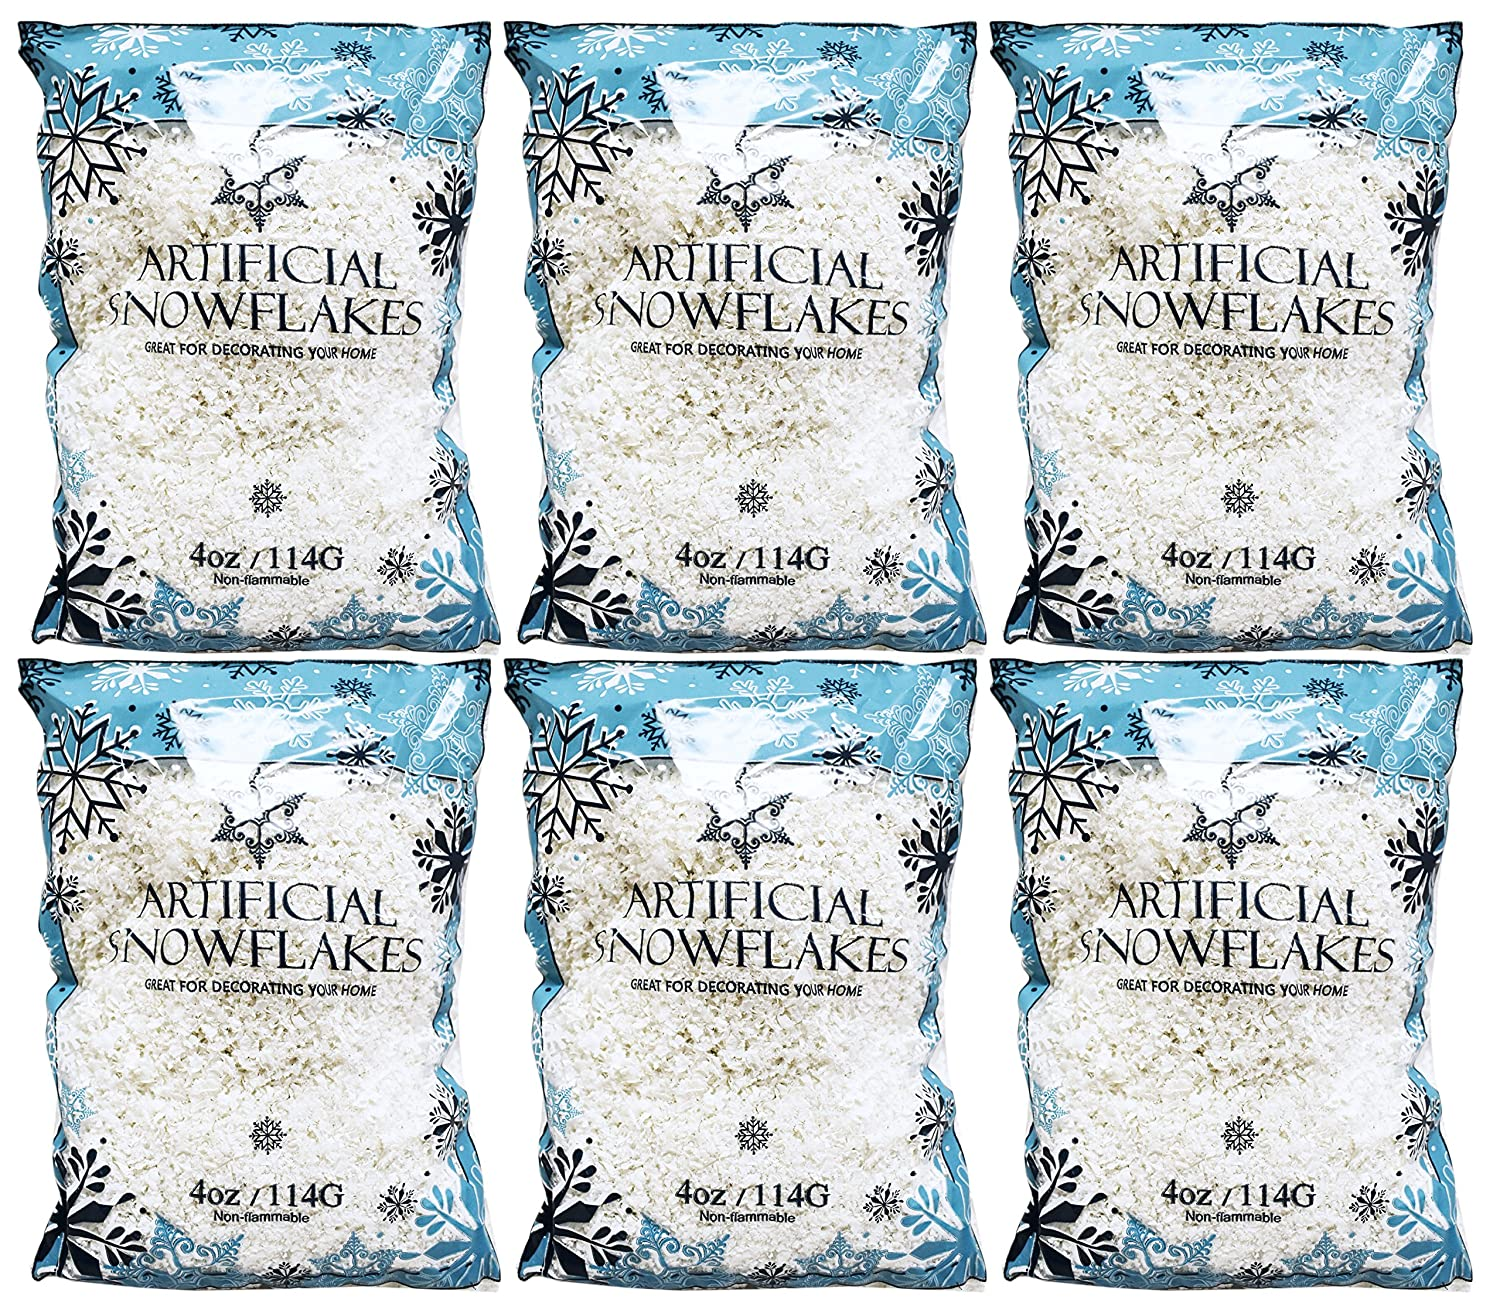 Set of 4 Ounces of Artificial Snow Flakes Bag Blue Printed Polybag by Black Duck Brand